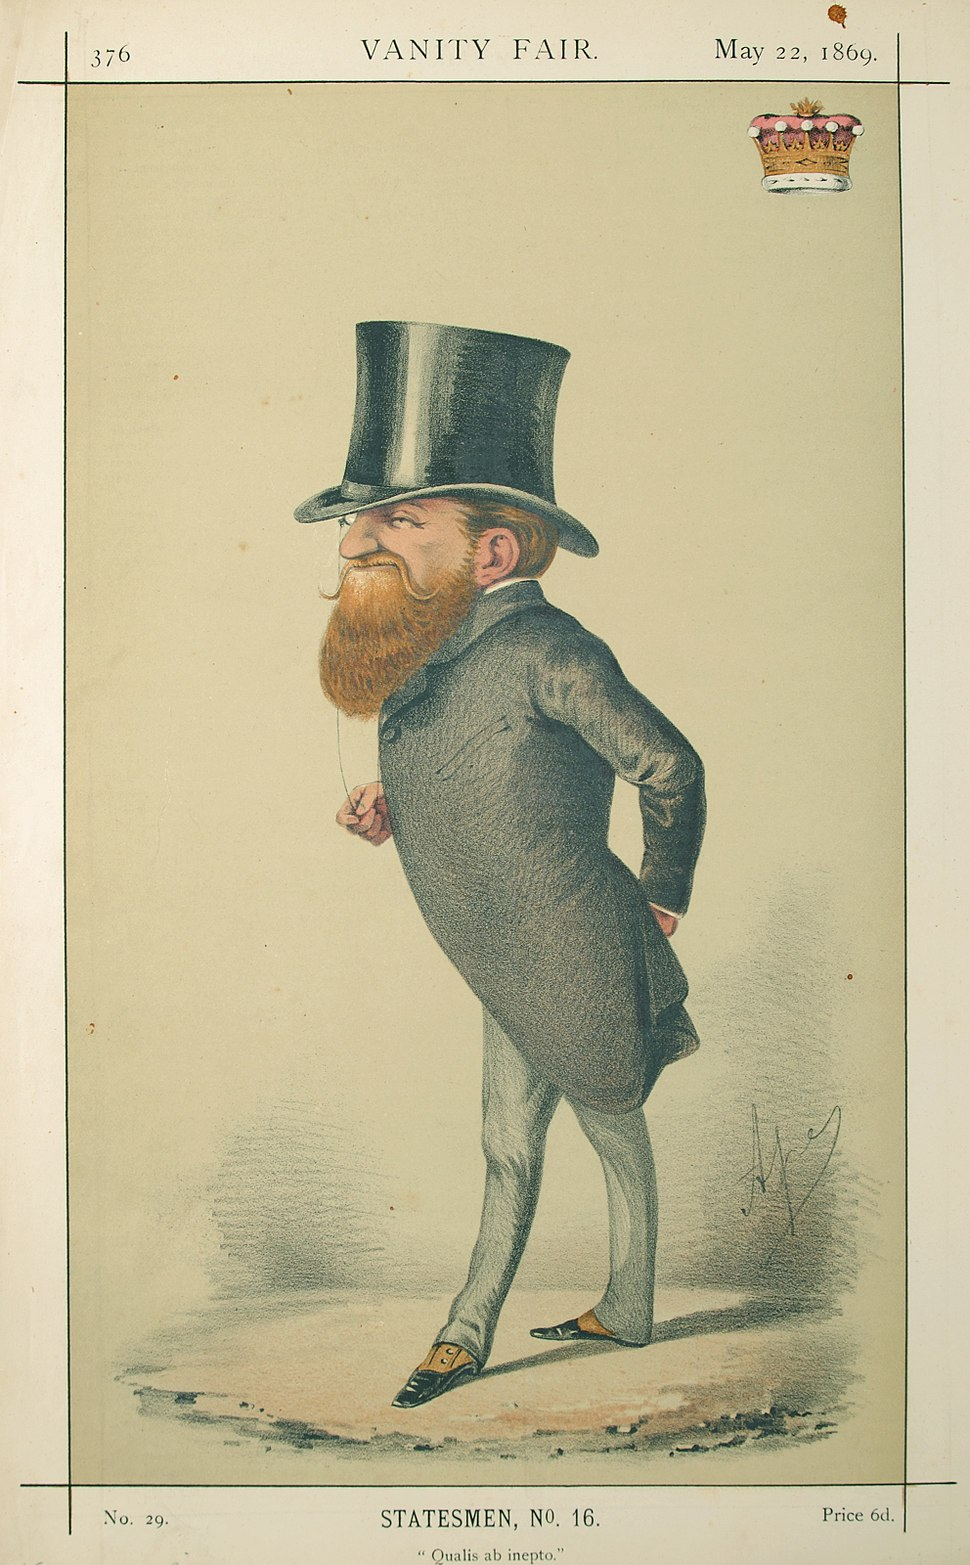 George Robinson, Vanity Fair, 1869-05-22